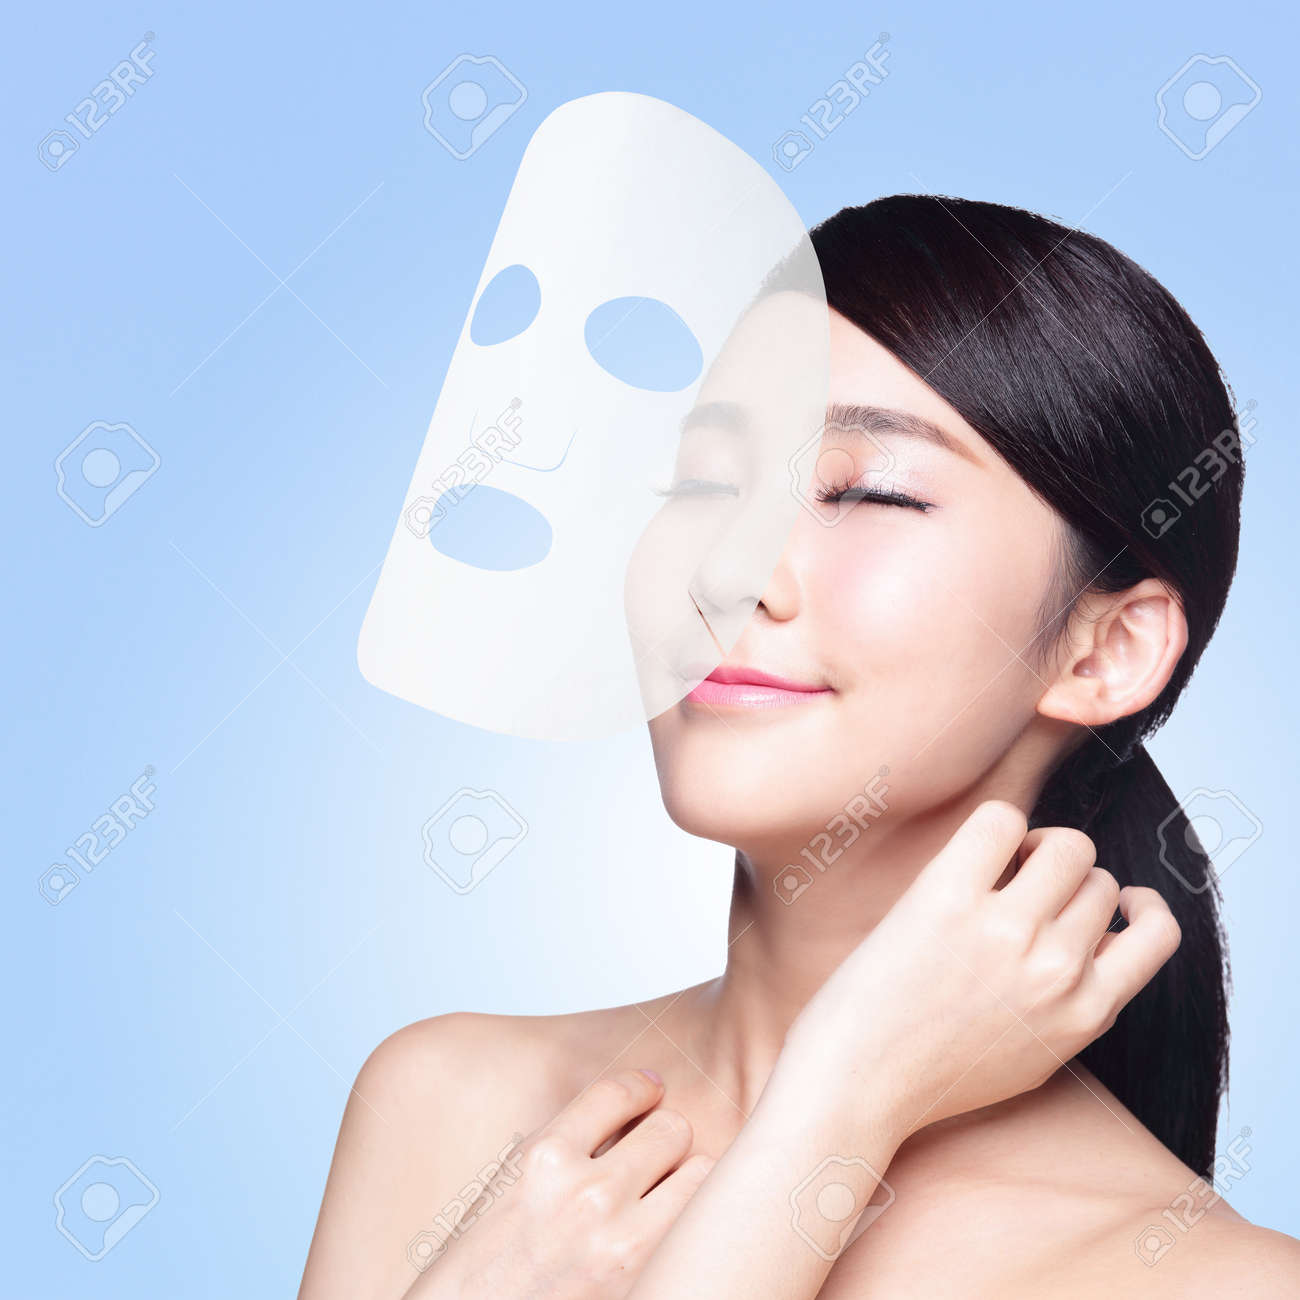 Relax Young Woman With Cloth Facial Mask Isolated On Blue Background Stock Photo Picture And Royalty Free Image Image 33423685